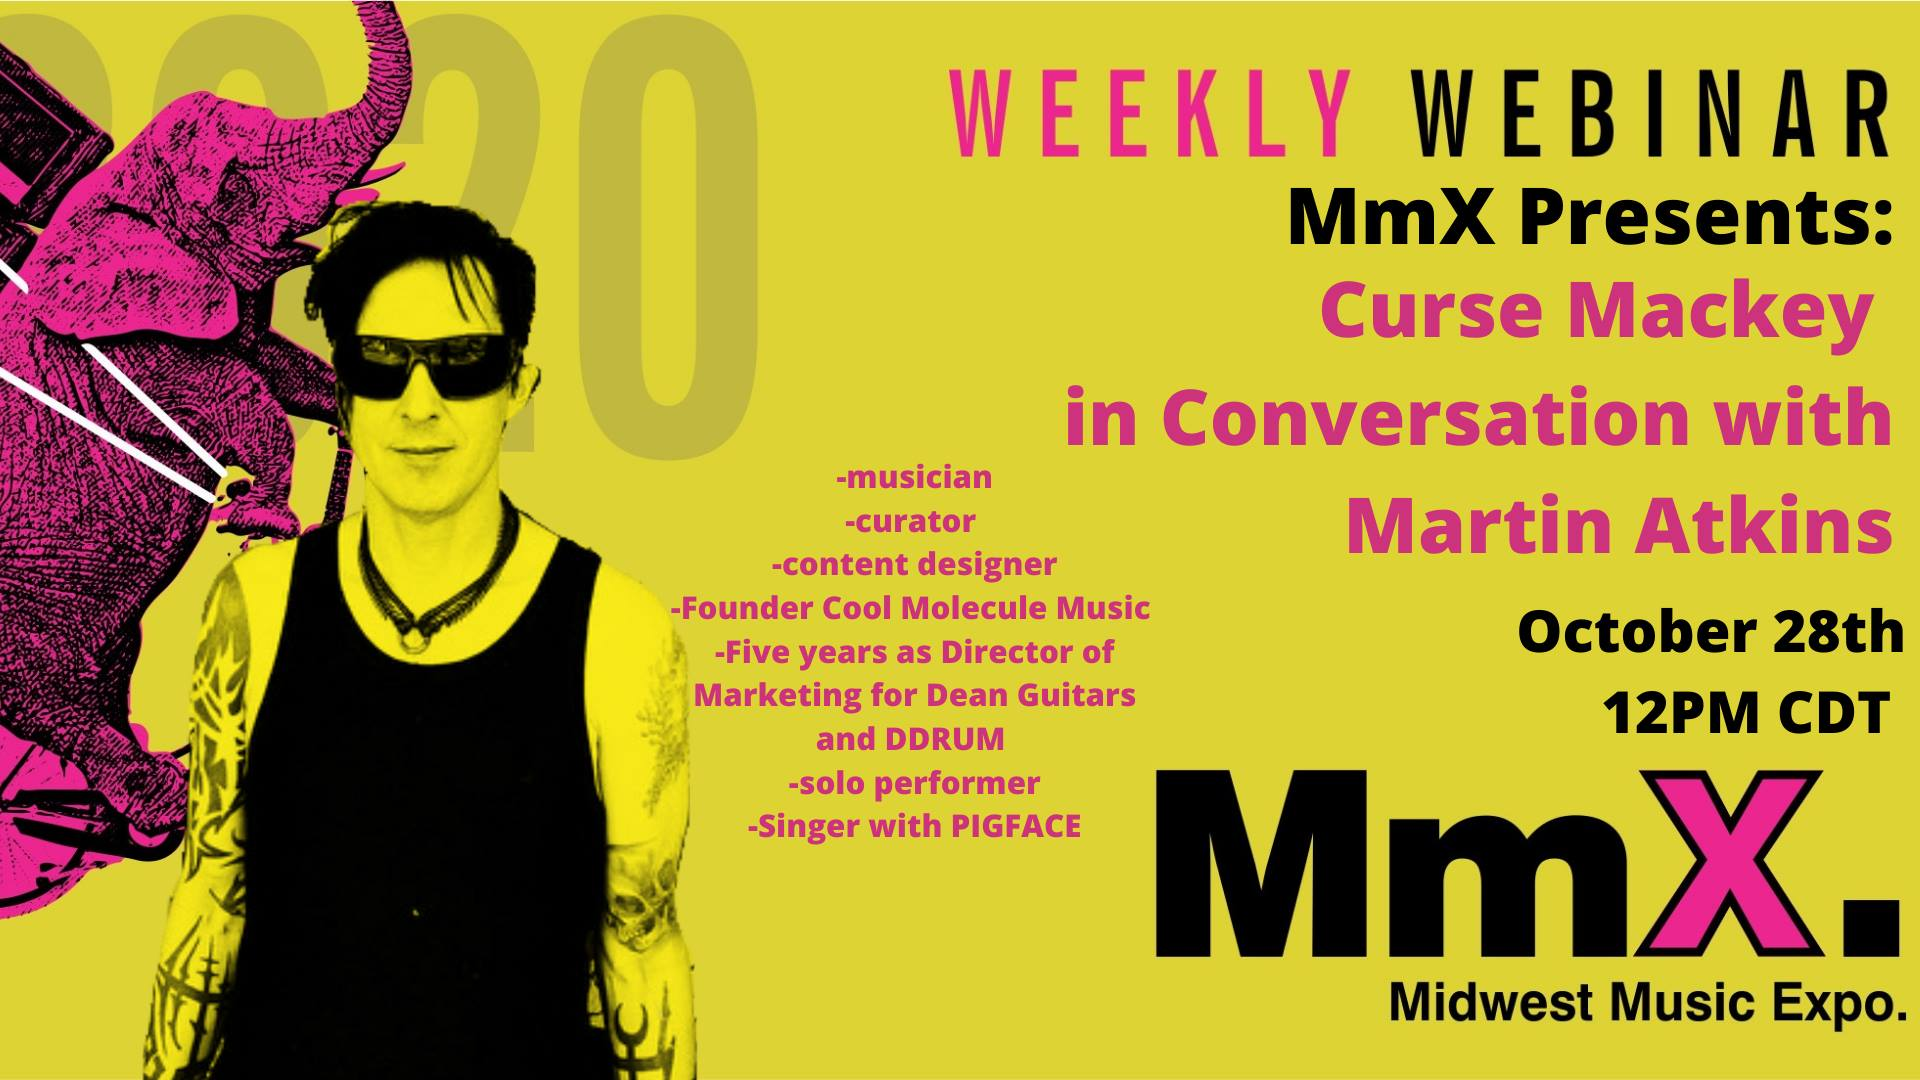 MMX Weekly: Curse Mackey in Conversation with Martin Atkins